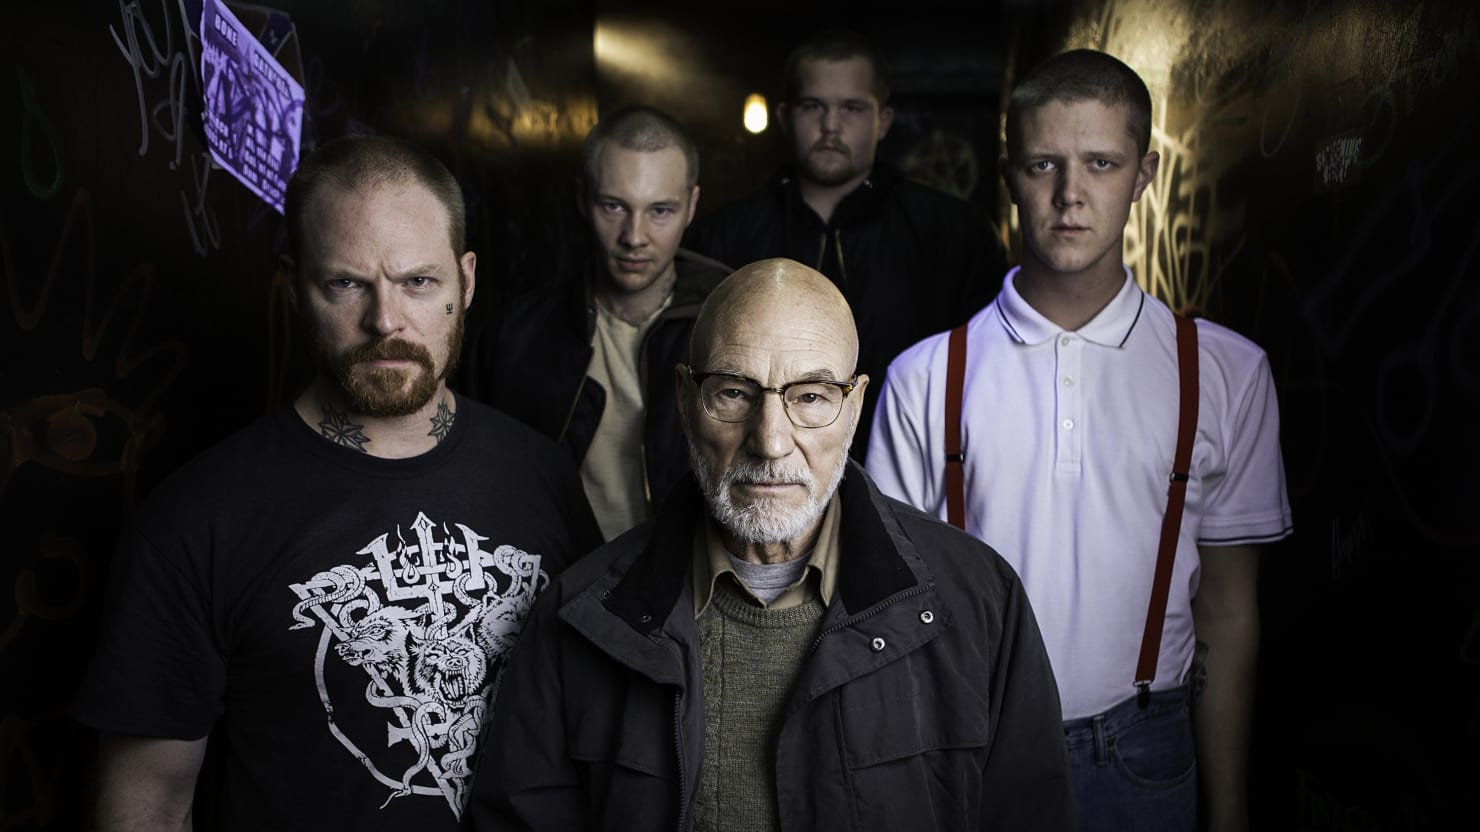 Why do not they catch skinheads because they are criminals 44